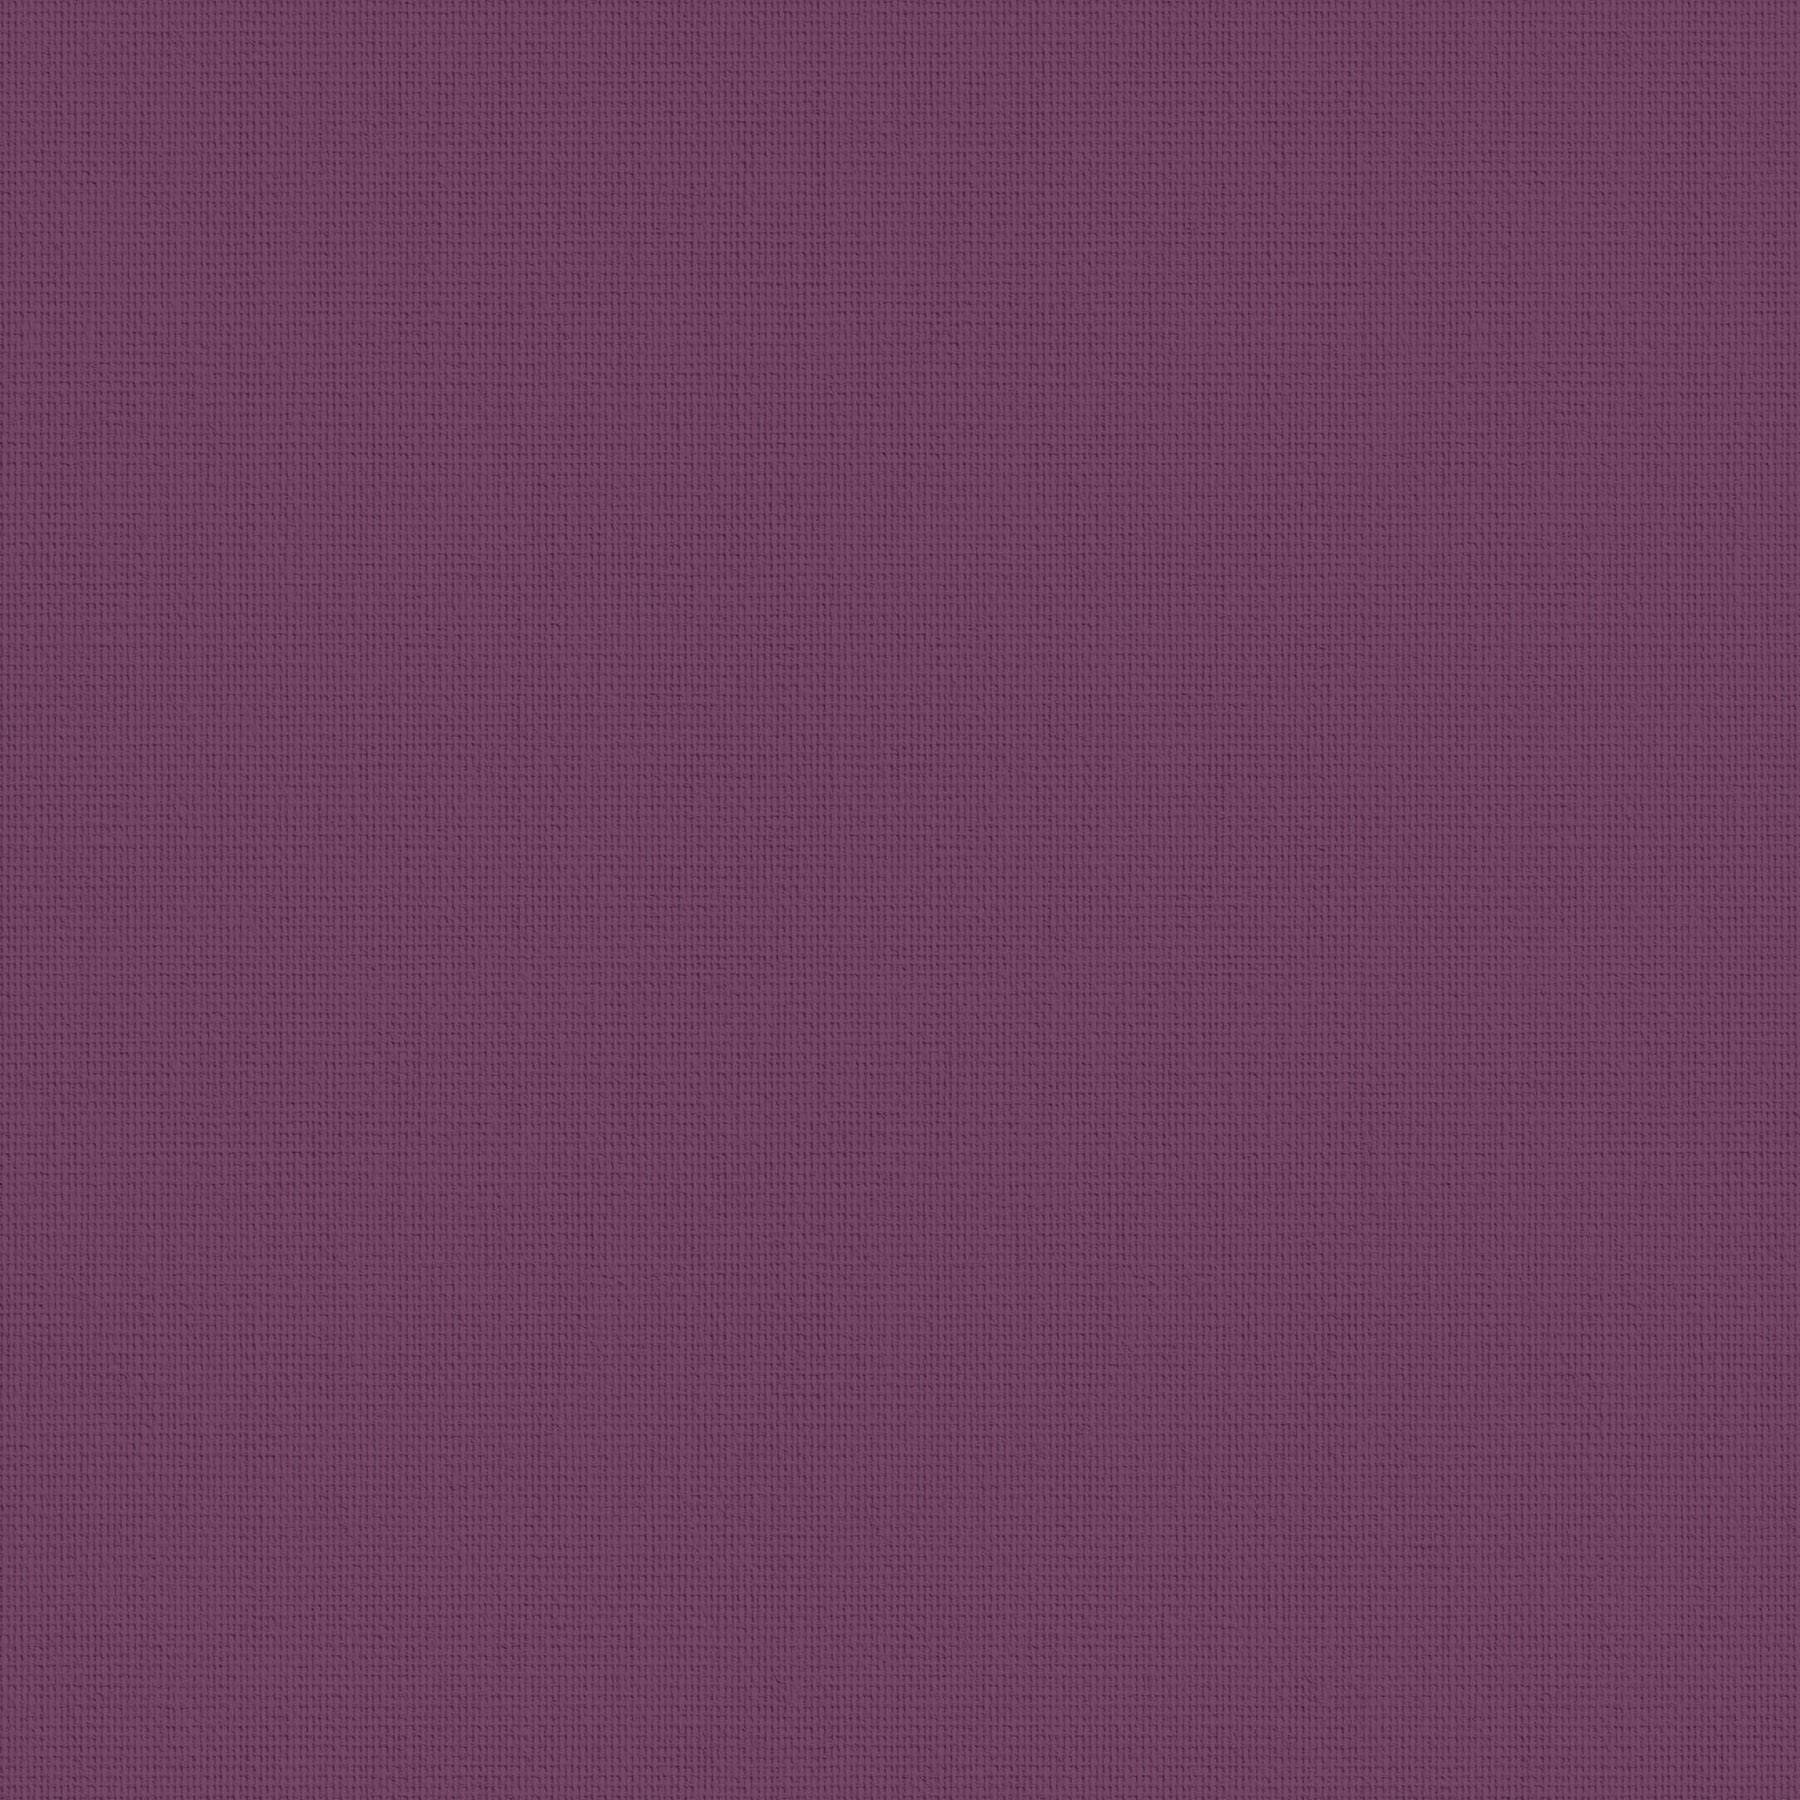 Unicolour FR Mulberry Purple swatch